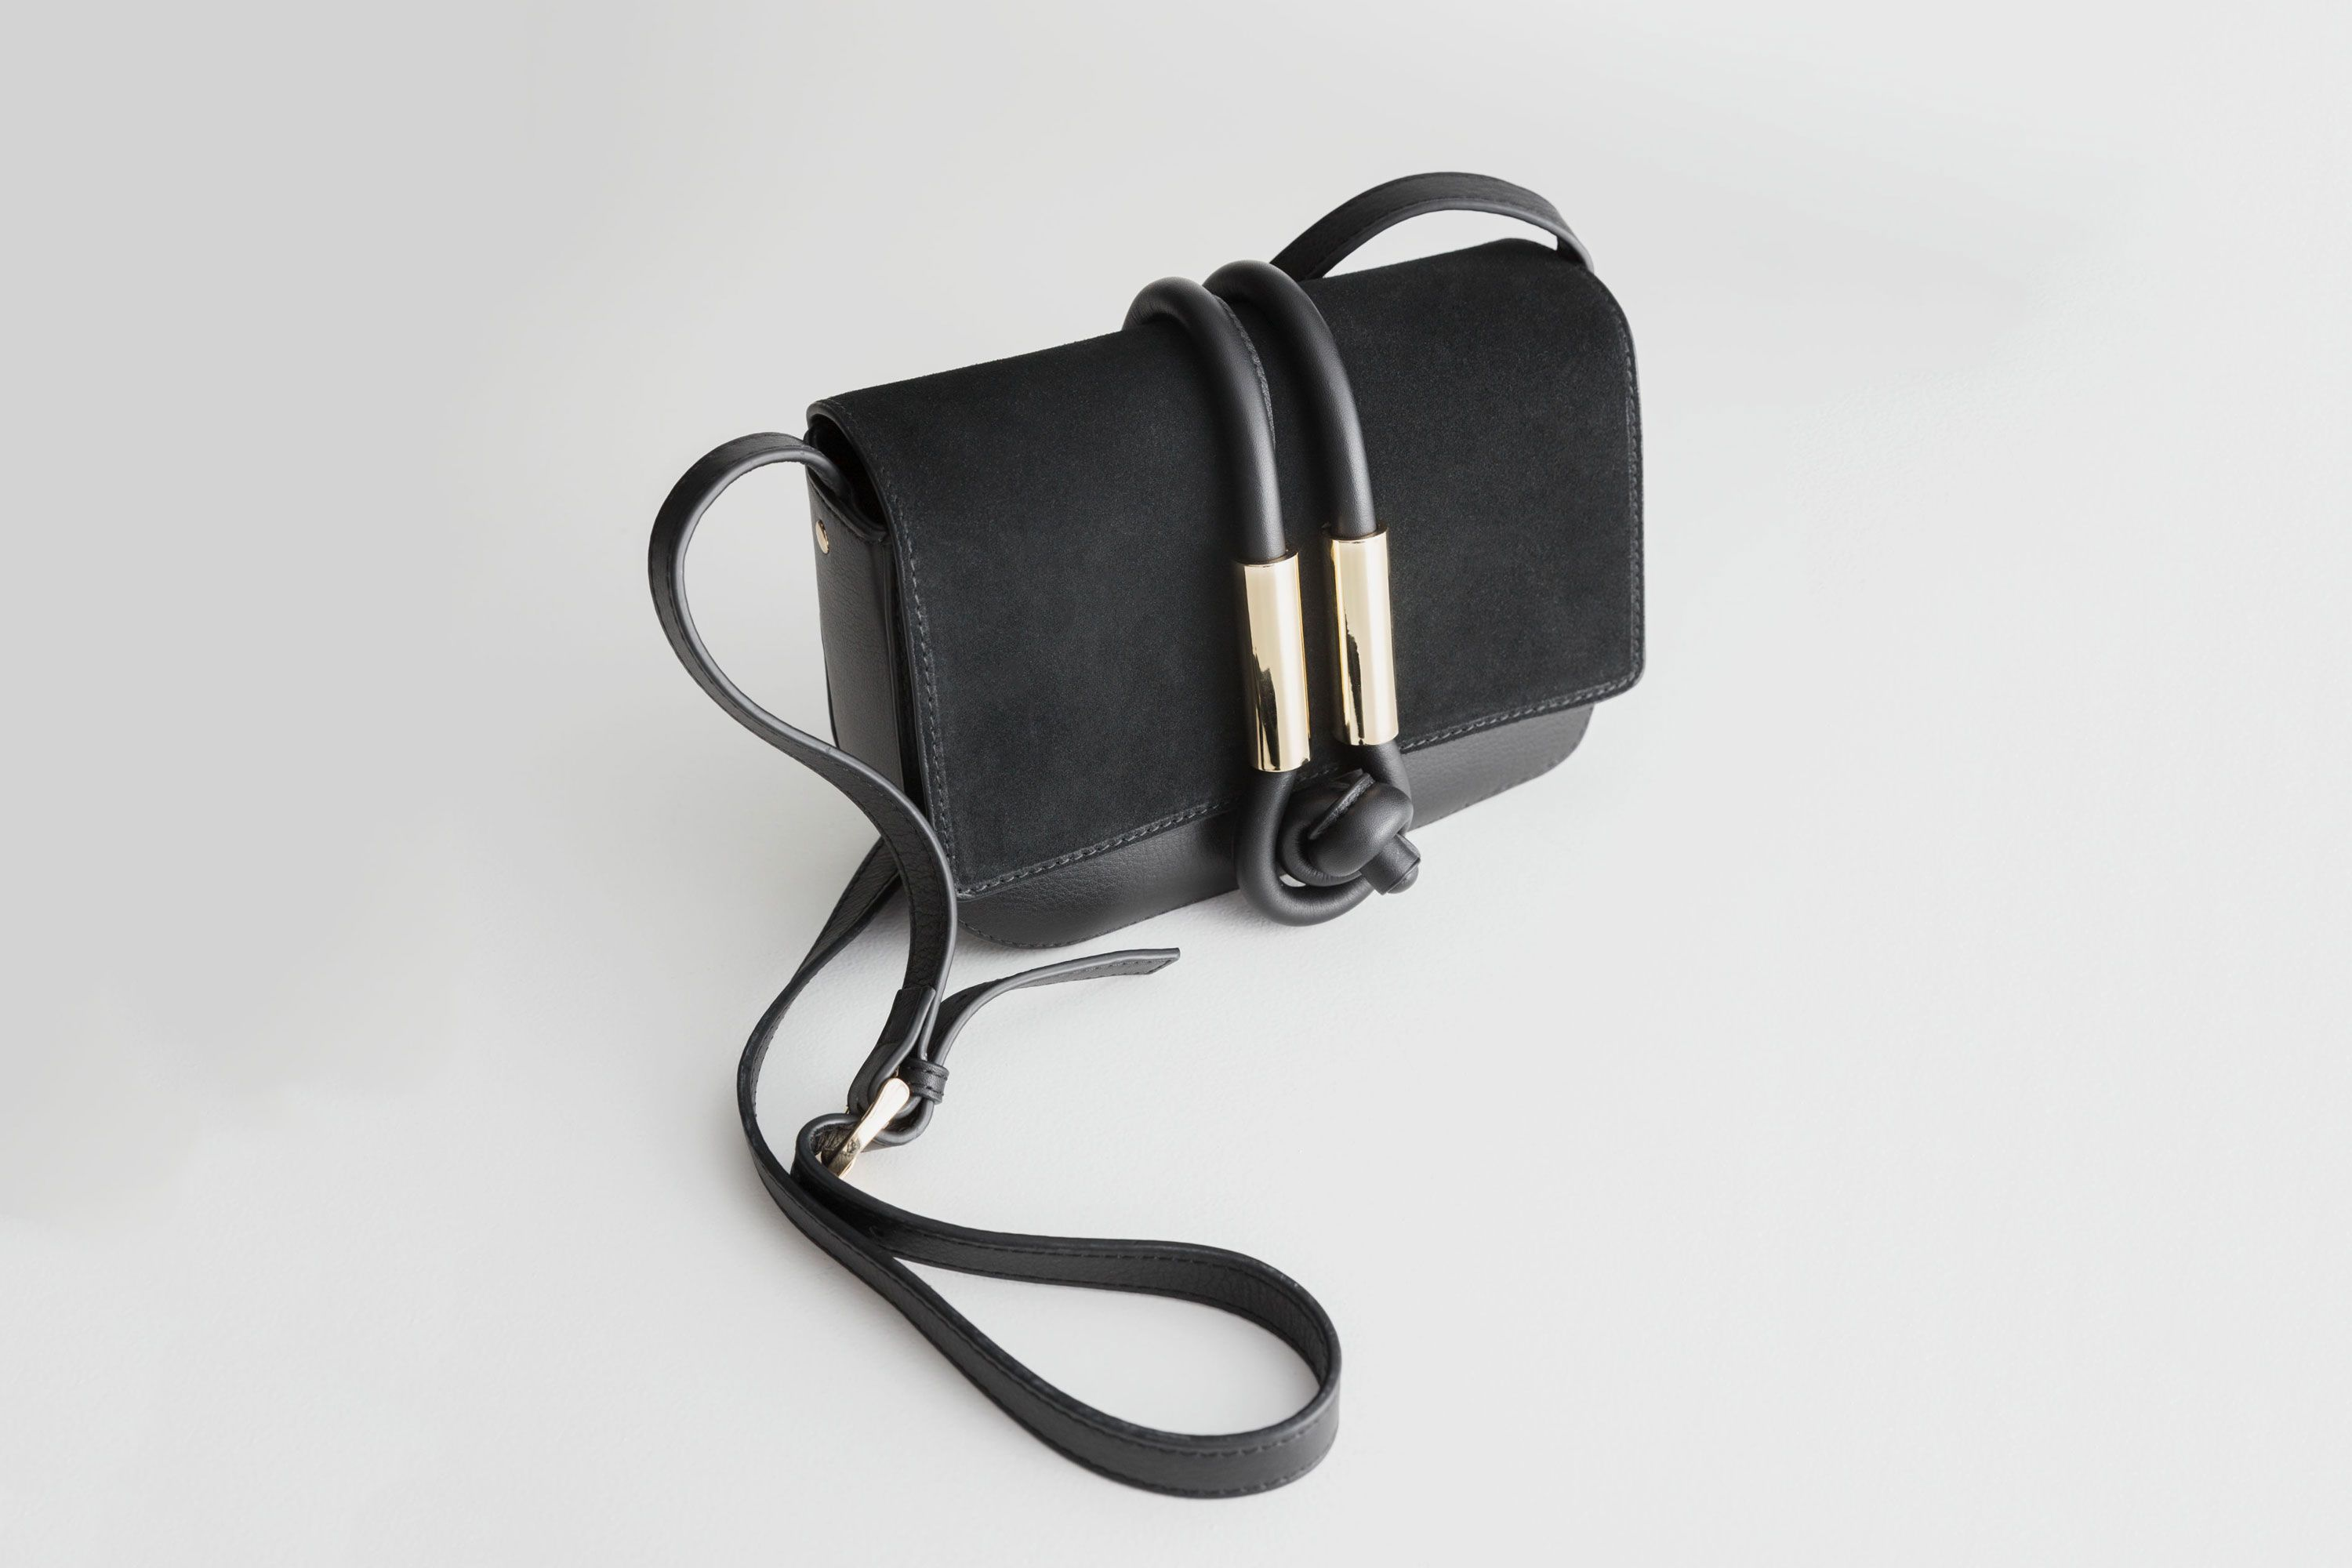 & Other Stories Leather Knot Crossbody Bag